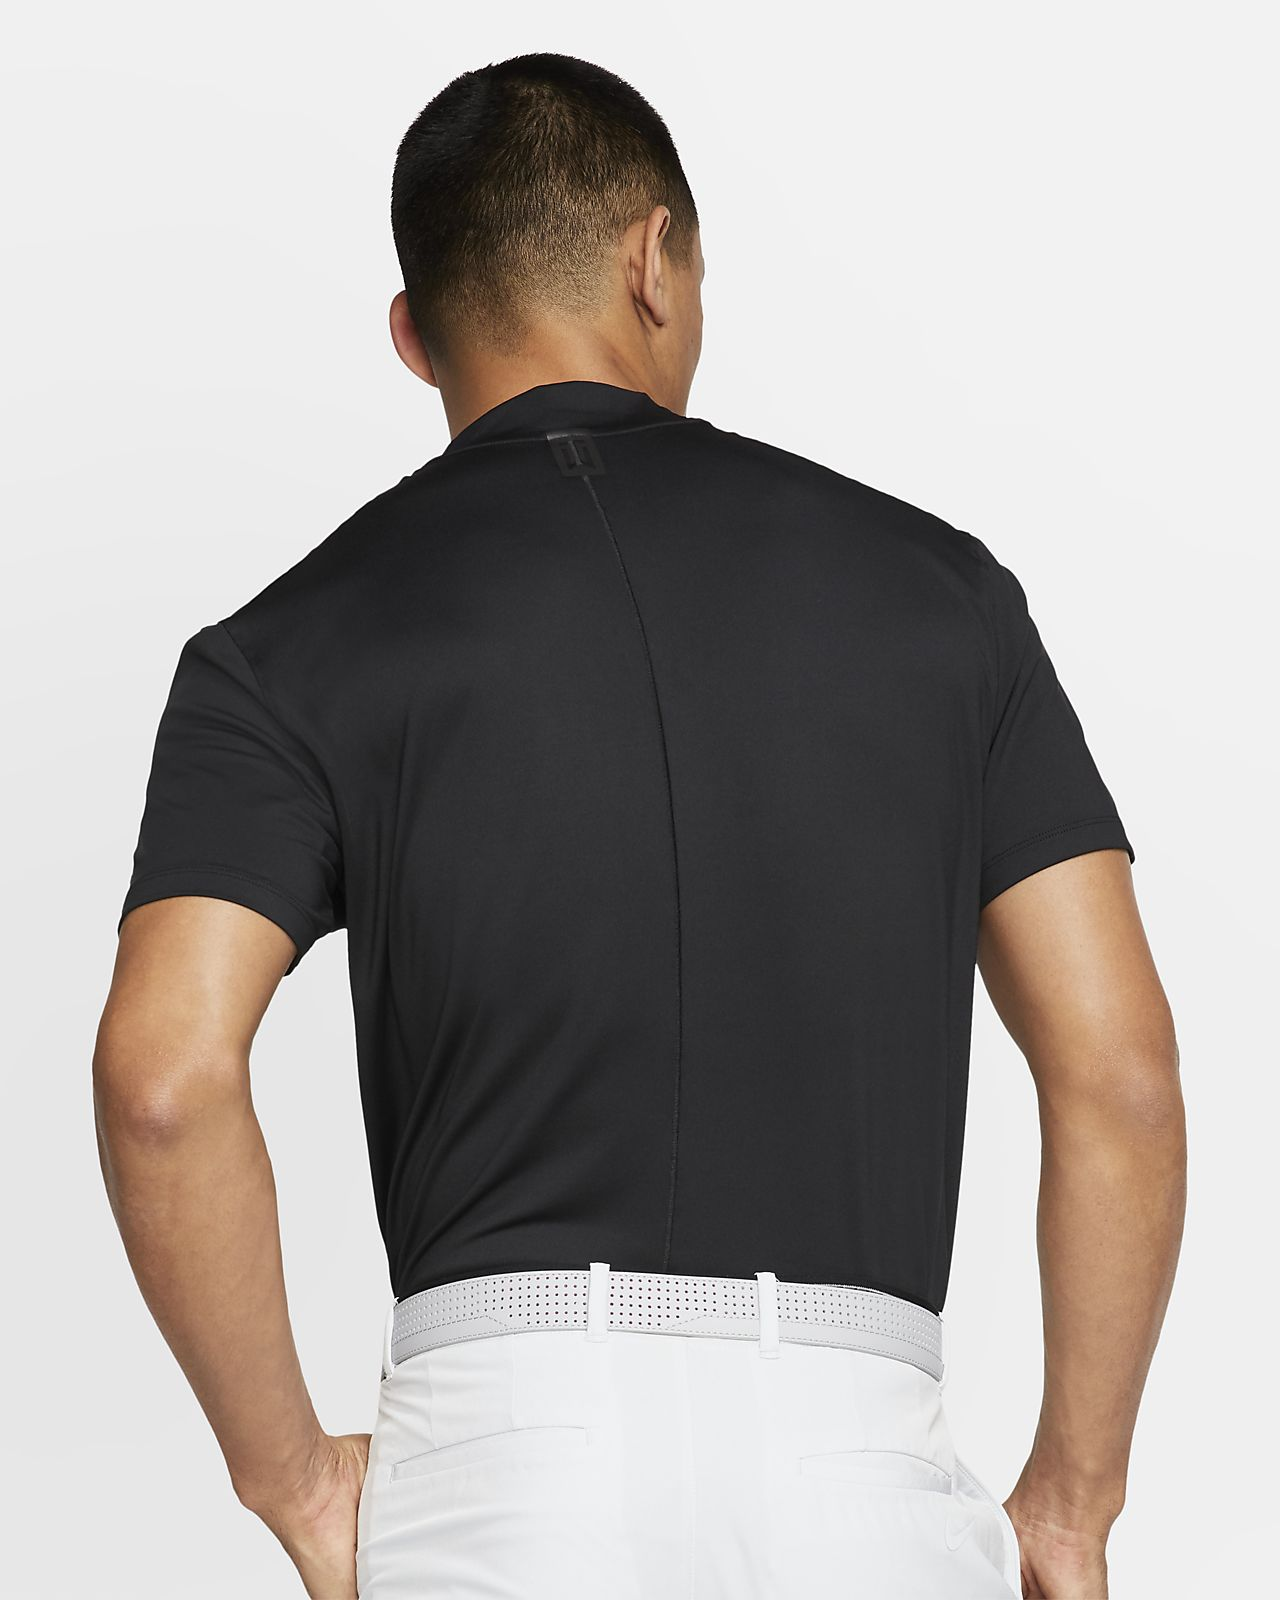 694664e2 Nike Dri-FIT Tiger Woods Vapor Men's Mock-Neck Golf Top. Nike.com